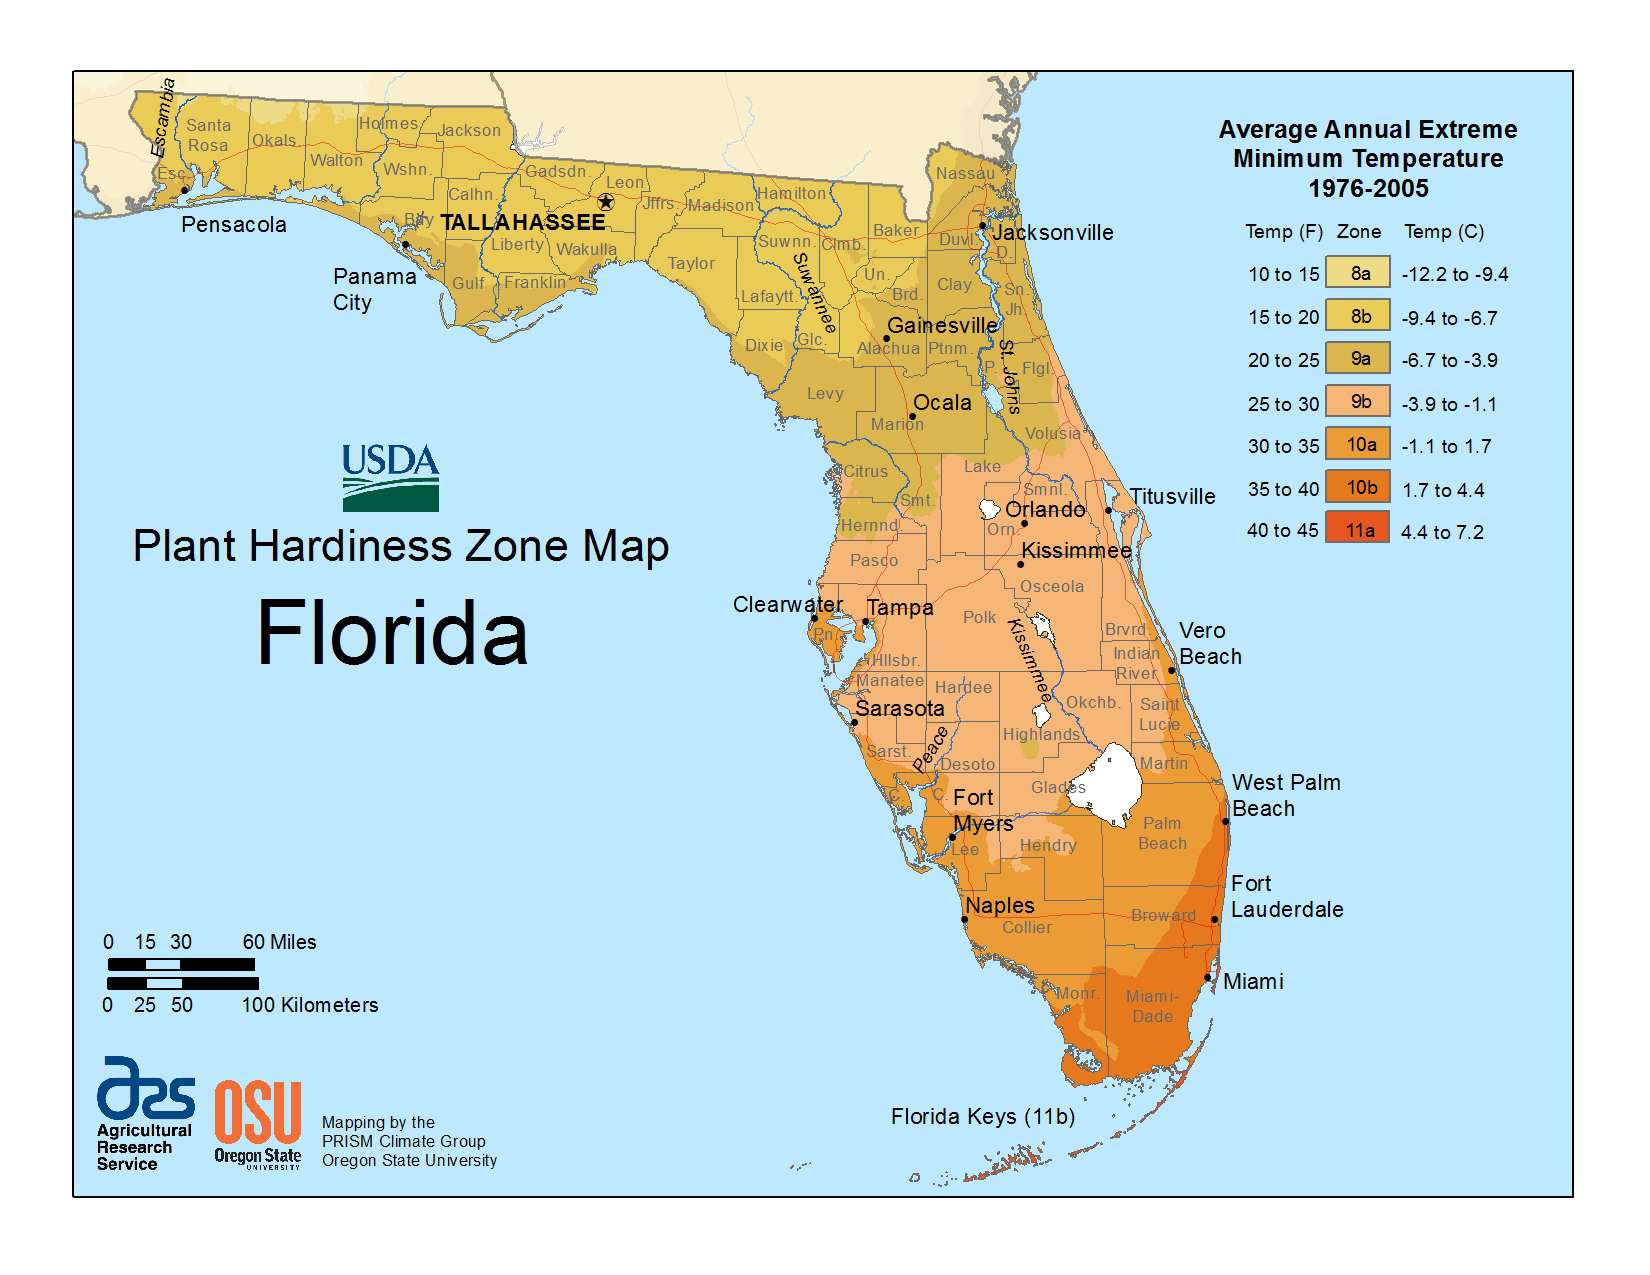 State Maps Of Usda Plant Hardiness Zones - Usda Zone Map Florida